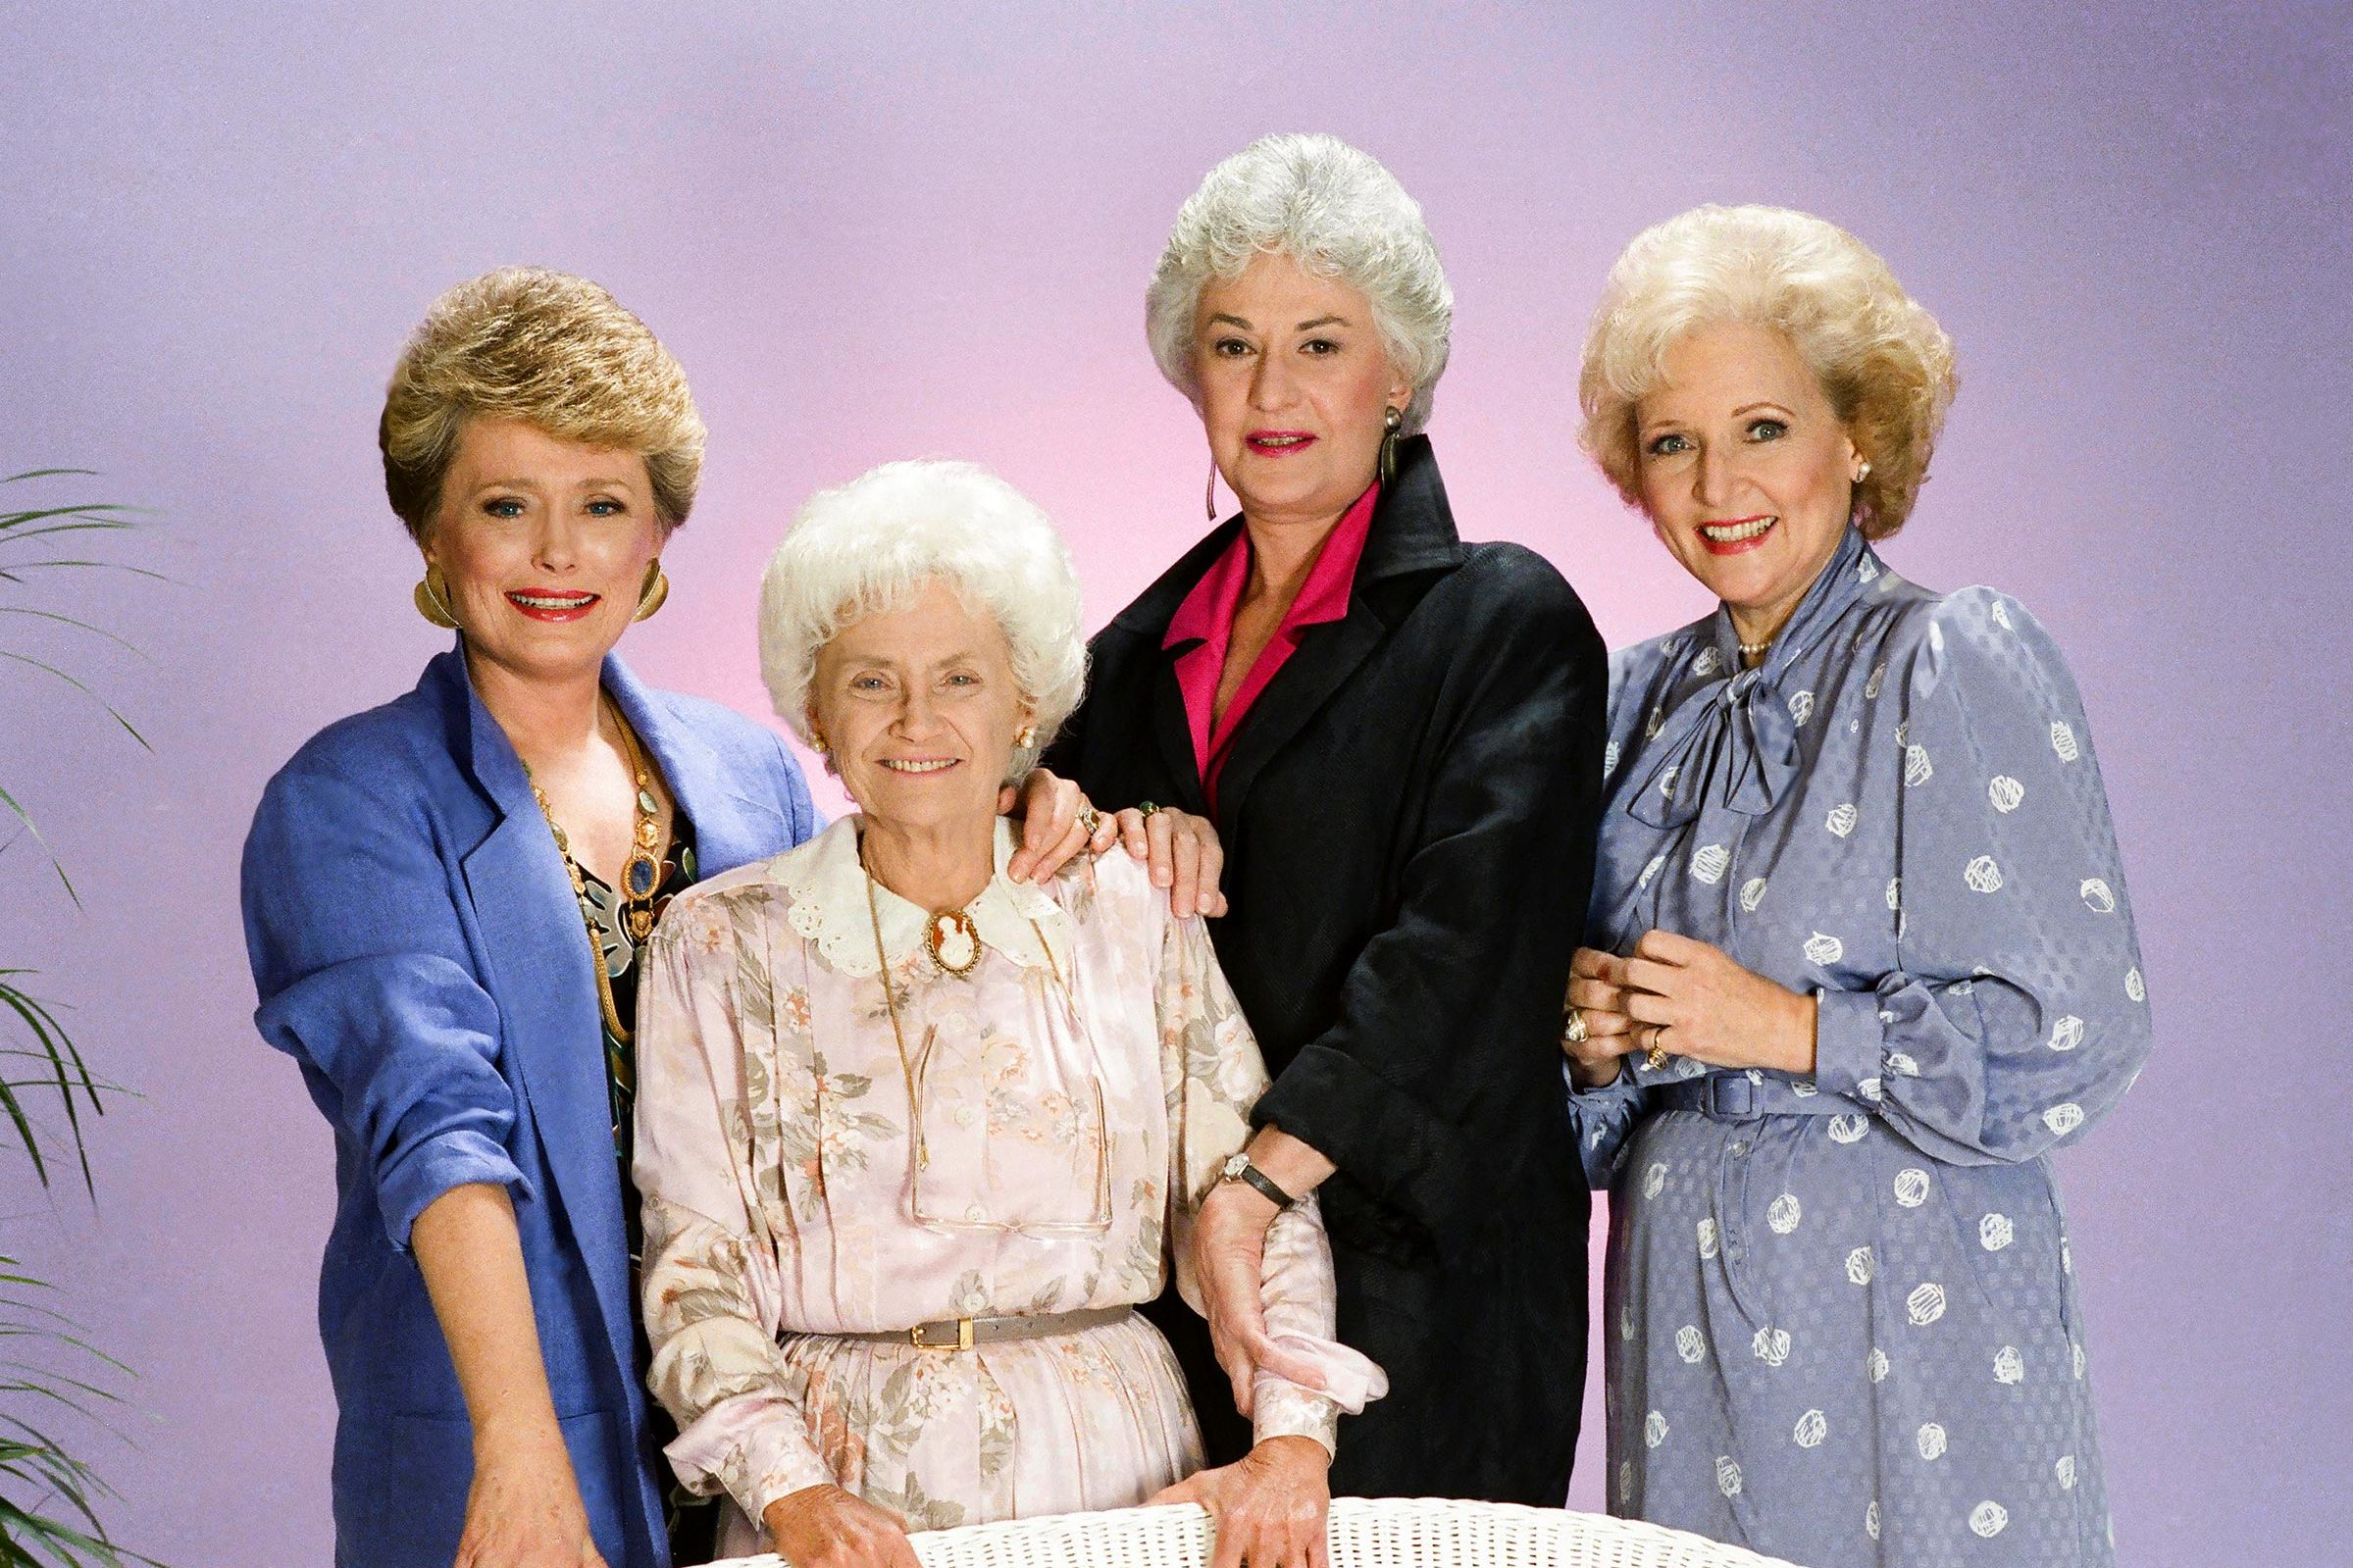 Every Episode of 'The Golden Girls' is Coming to Hulu